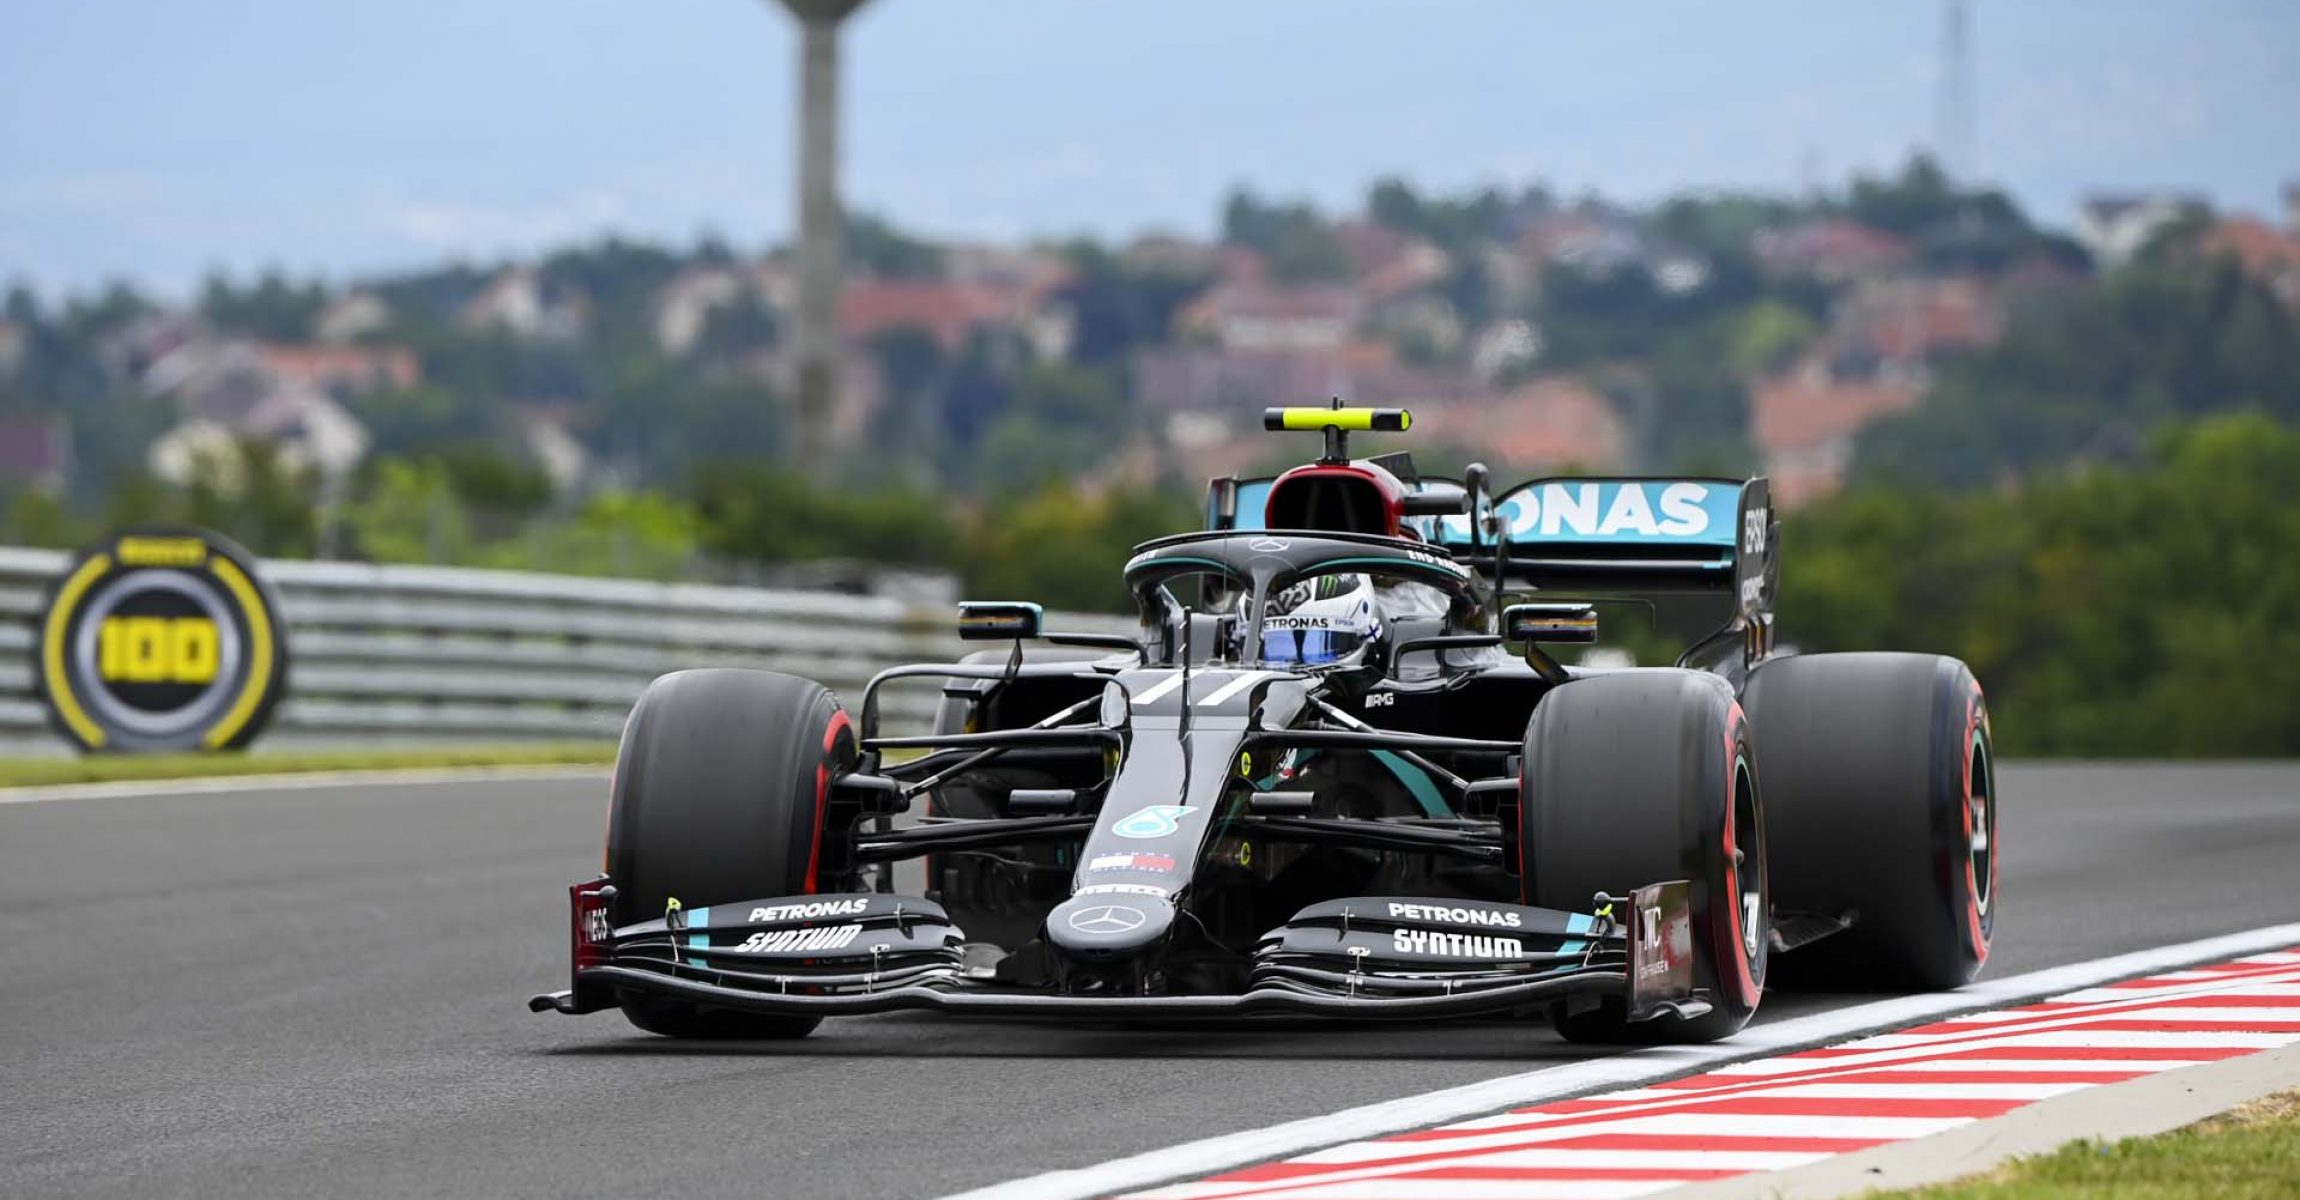 HUNGARORING, HUNGARY - JULY 17: Valtteri Bottas, Mercedes F1 W11 EQ Performance during the Hungarian GP at Hungaroring on Friday July 17, 2020 in Budapest, Hungary. (Photo by Mark Sutton / LAT Images)